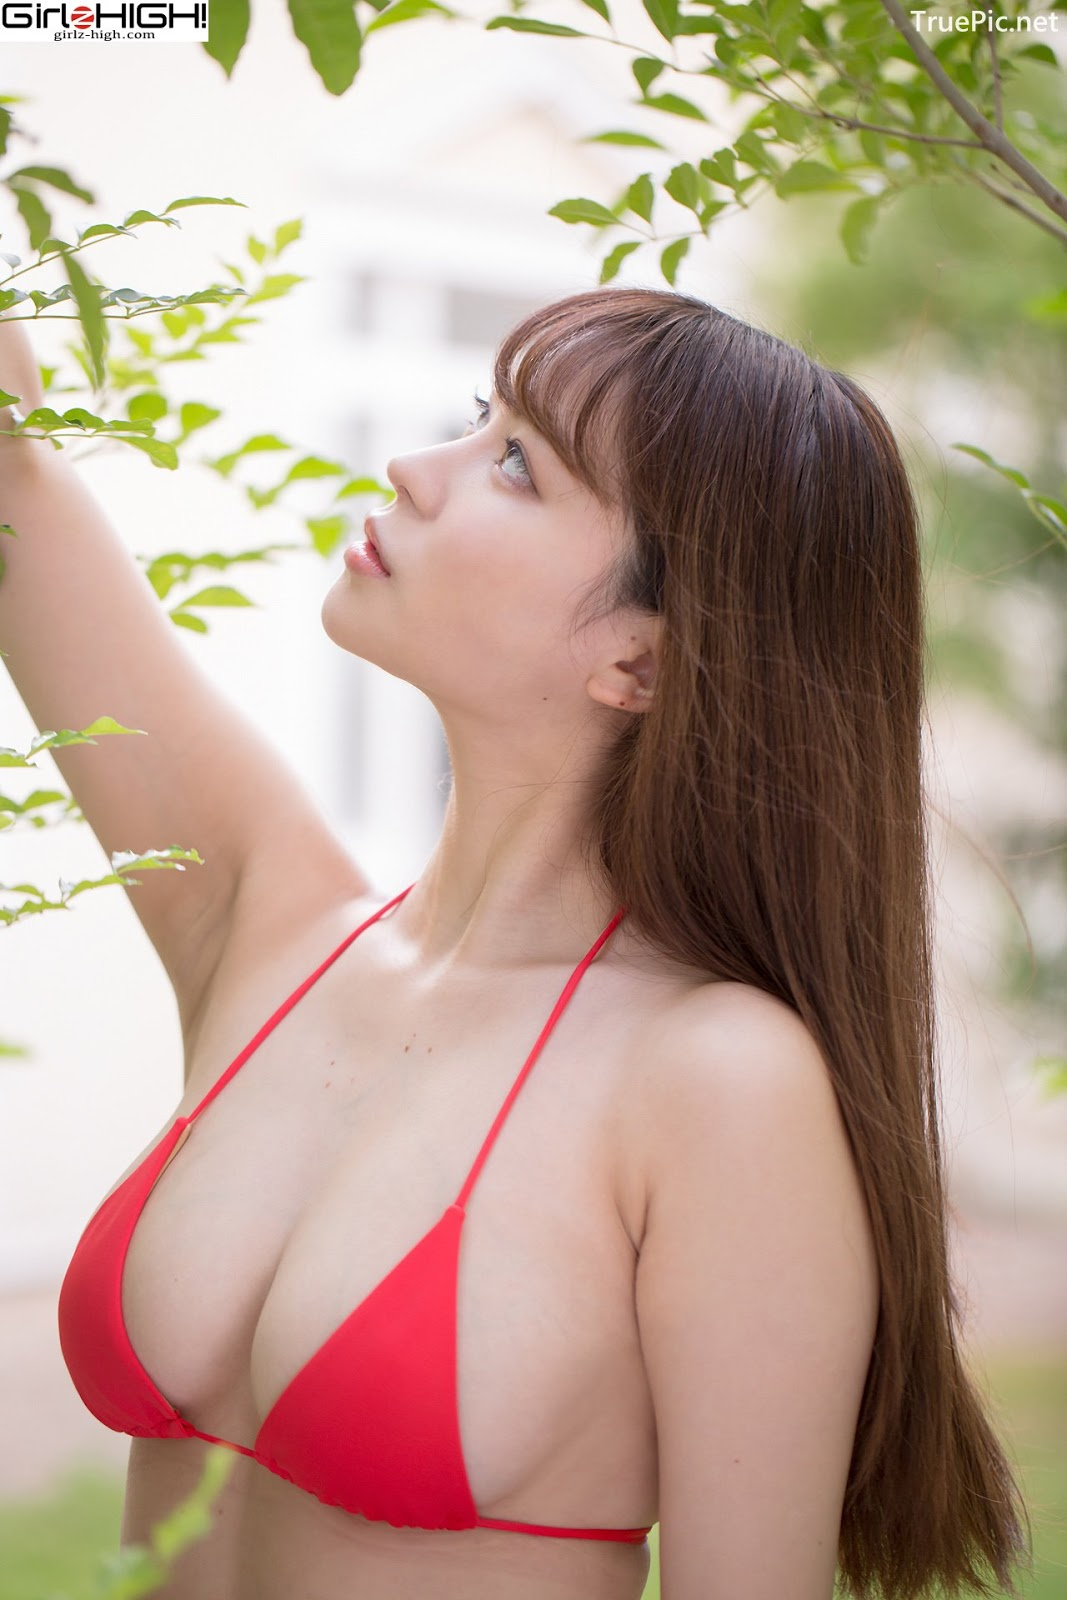 Image Japanese Gravure Idol - Kasumi Yoshinaga - Girlz High Album - TruePic.net - Picture-7